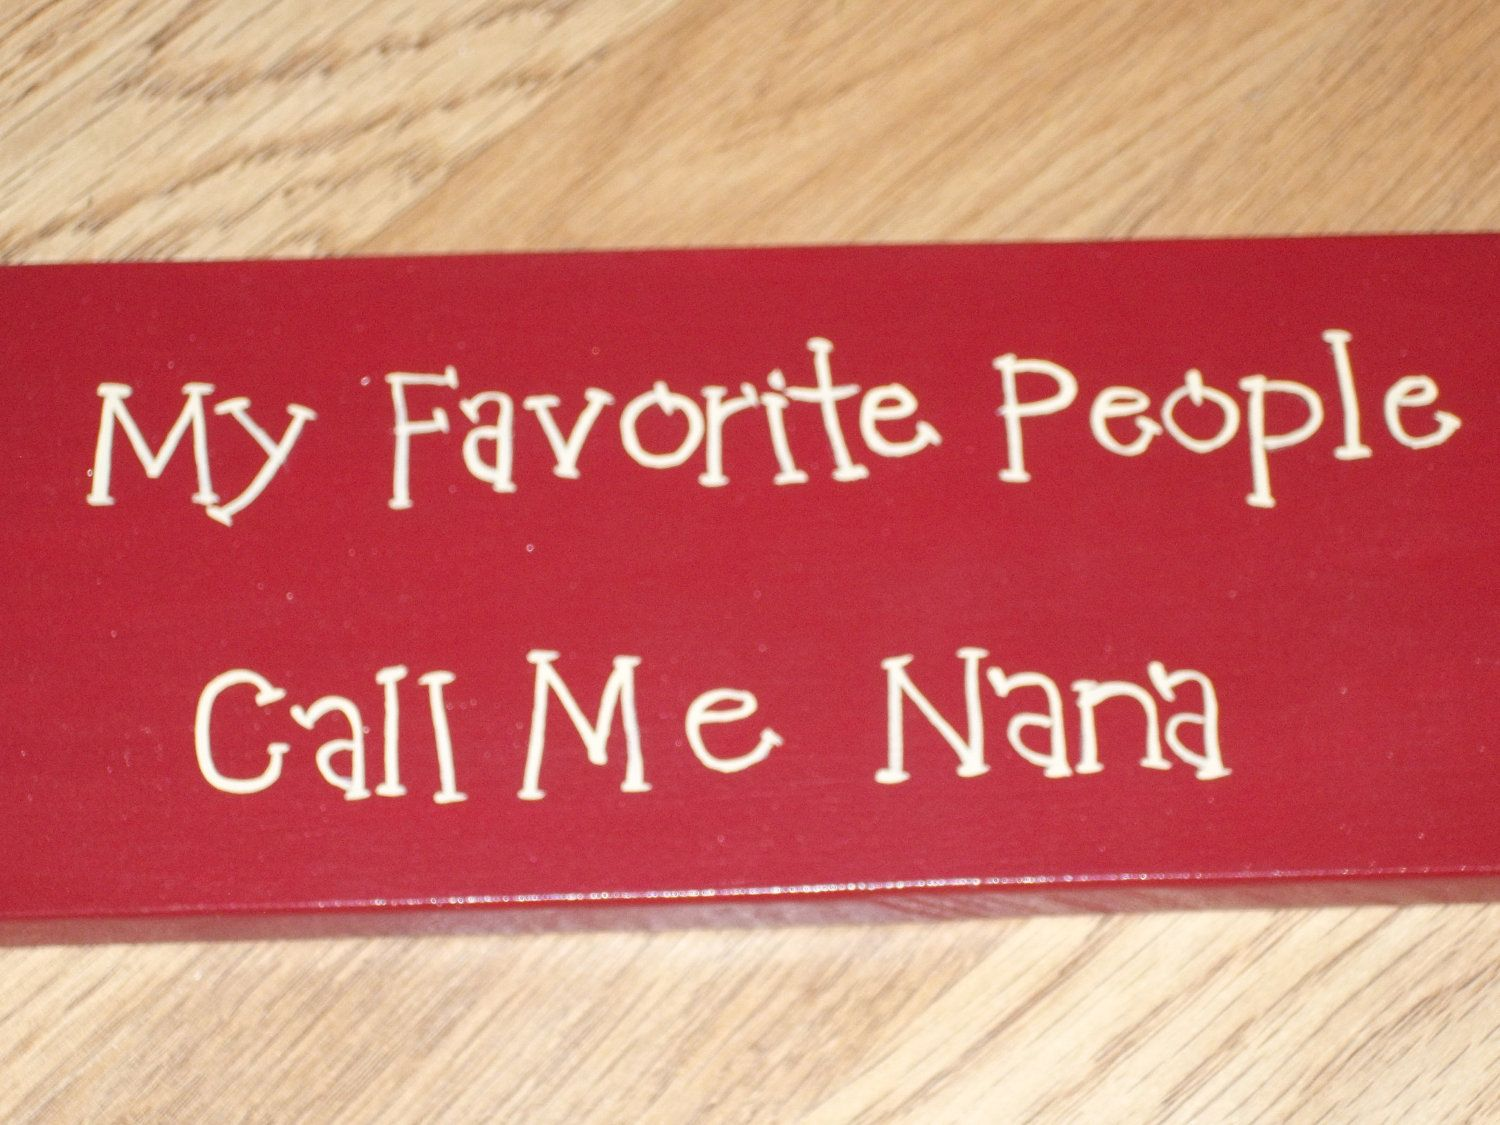 My Favorite People Call Me Nana - gift idea for my friend ...